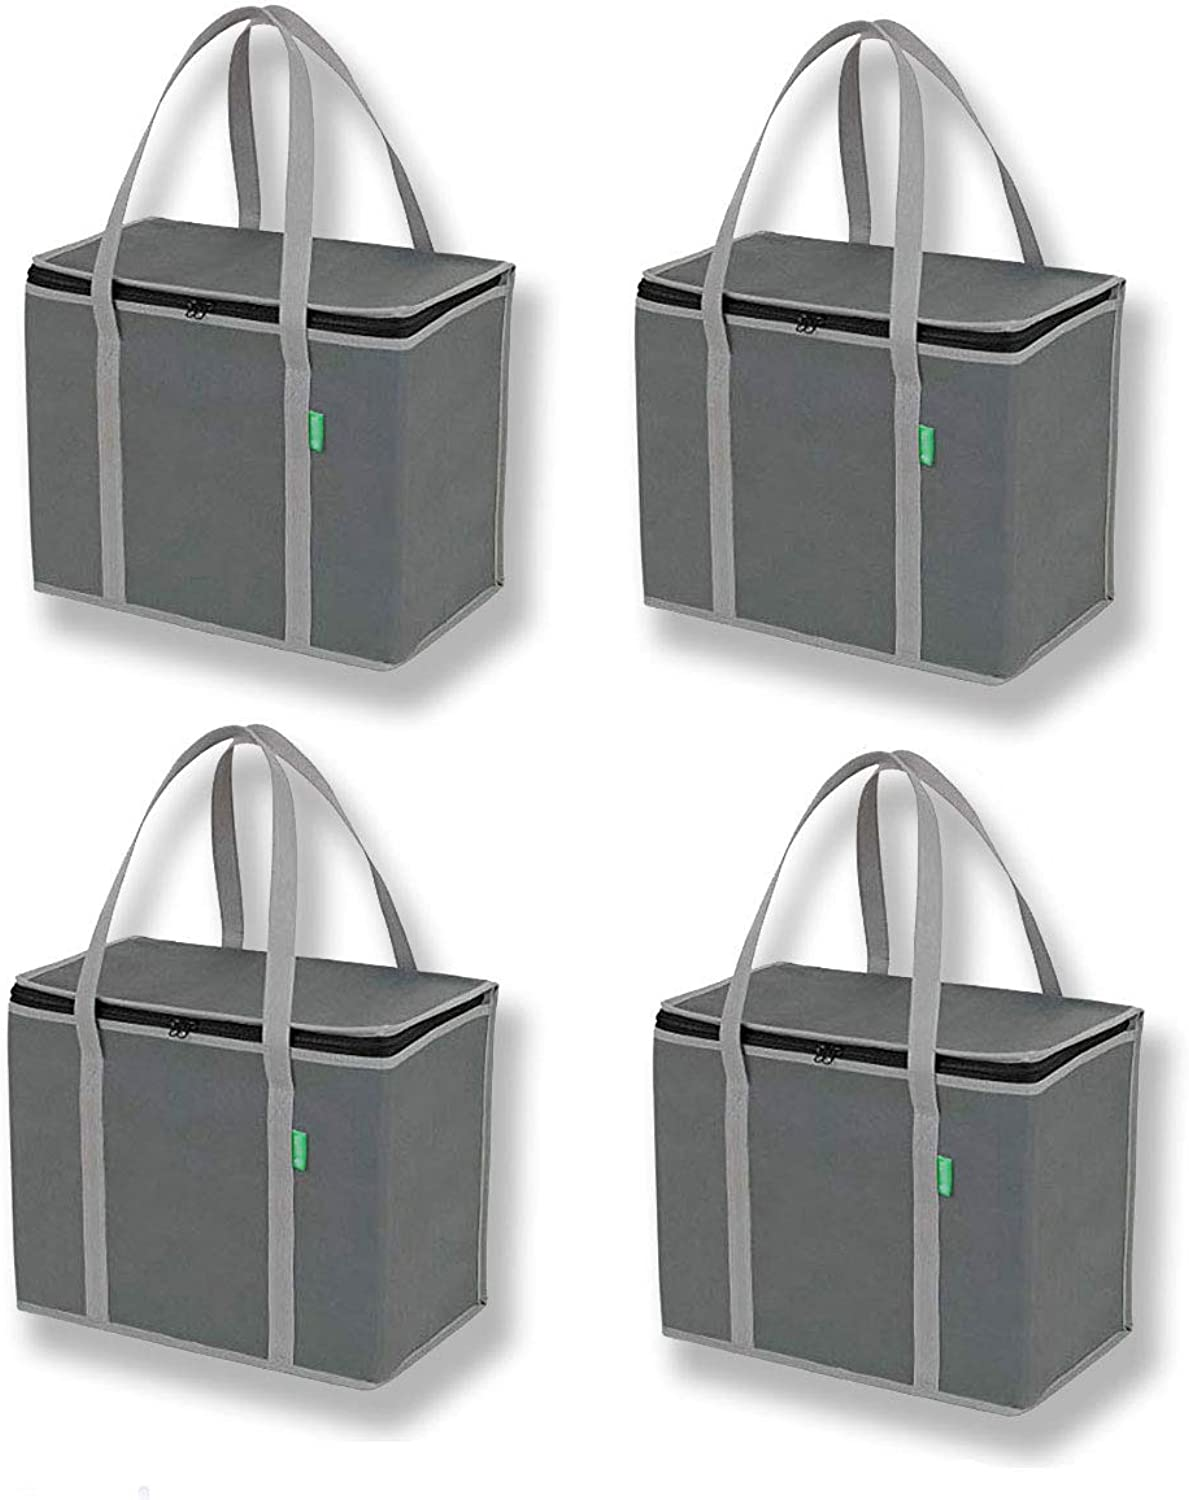 Insulated Cooler Grocery Bags 4-Pk Heavy Duty Straps 16